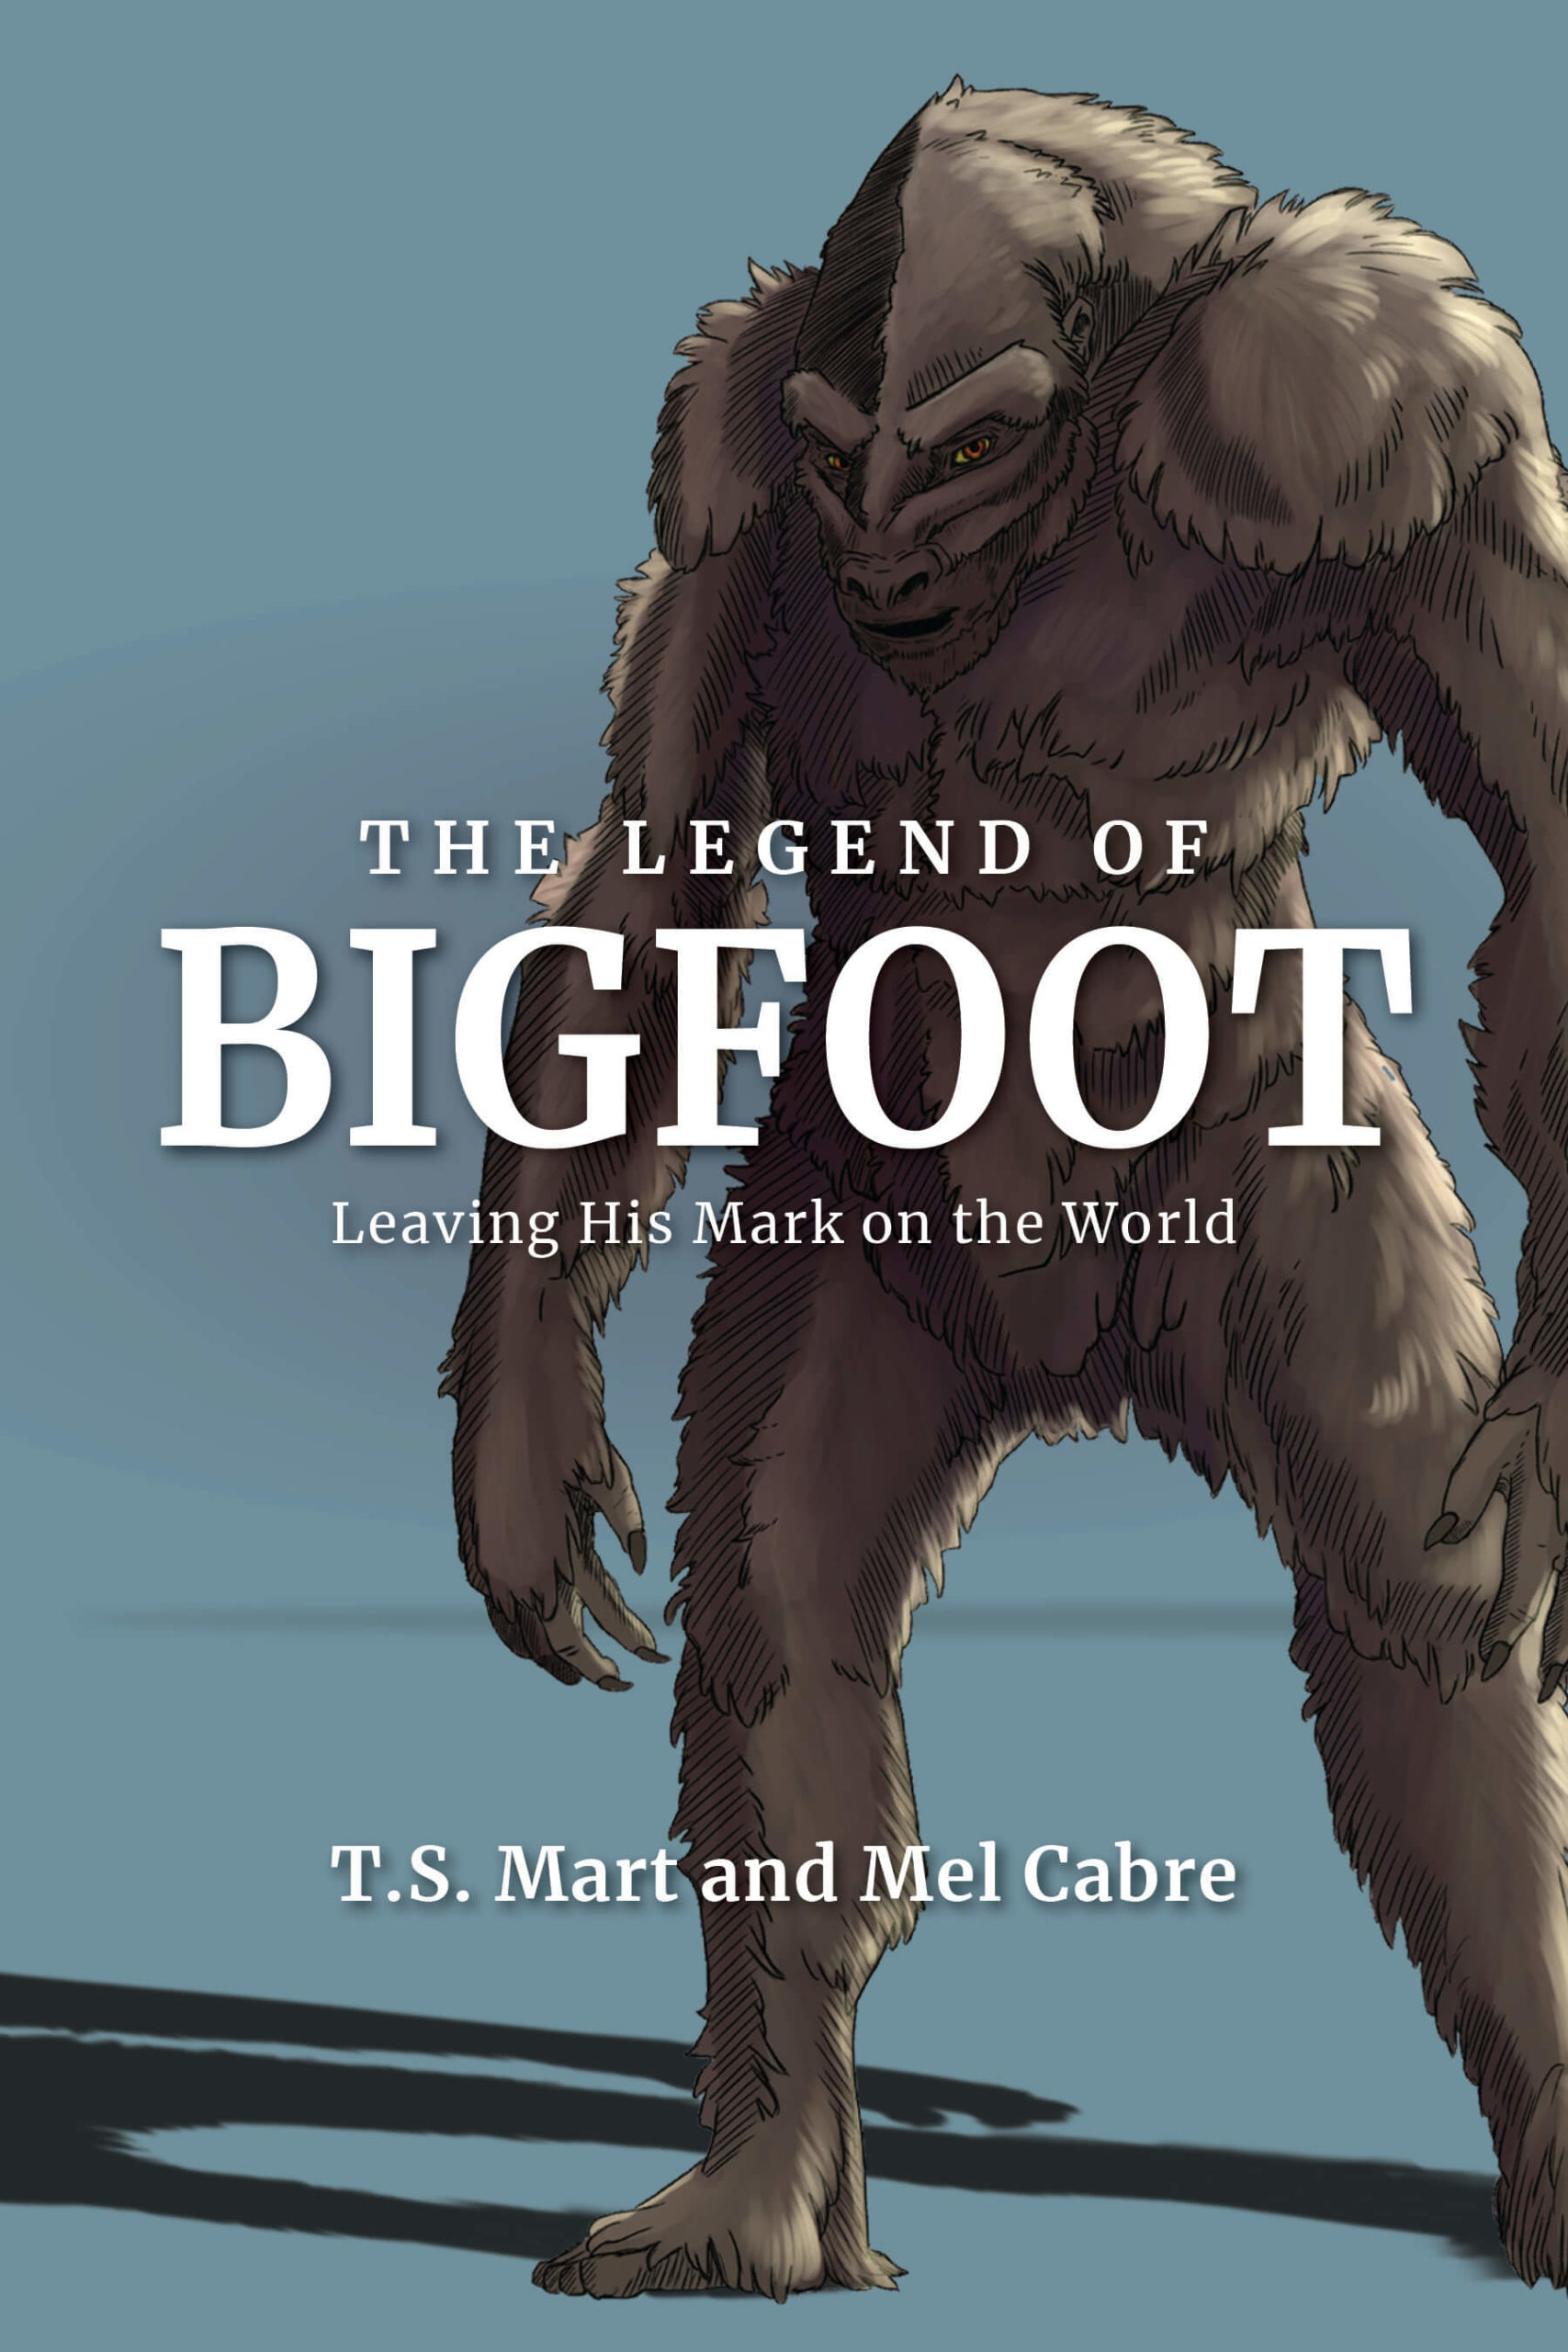 Download/Print Leaflet The Legend of Bigfoot Leaving His Mark on the World by T.S. Mart and Mel Cabre